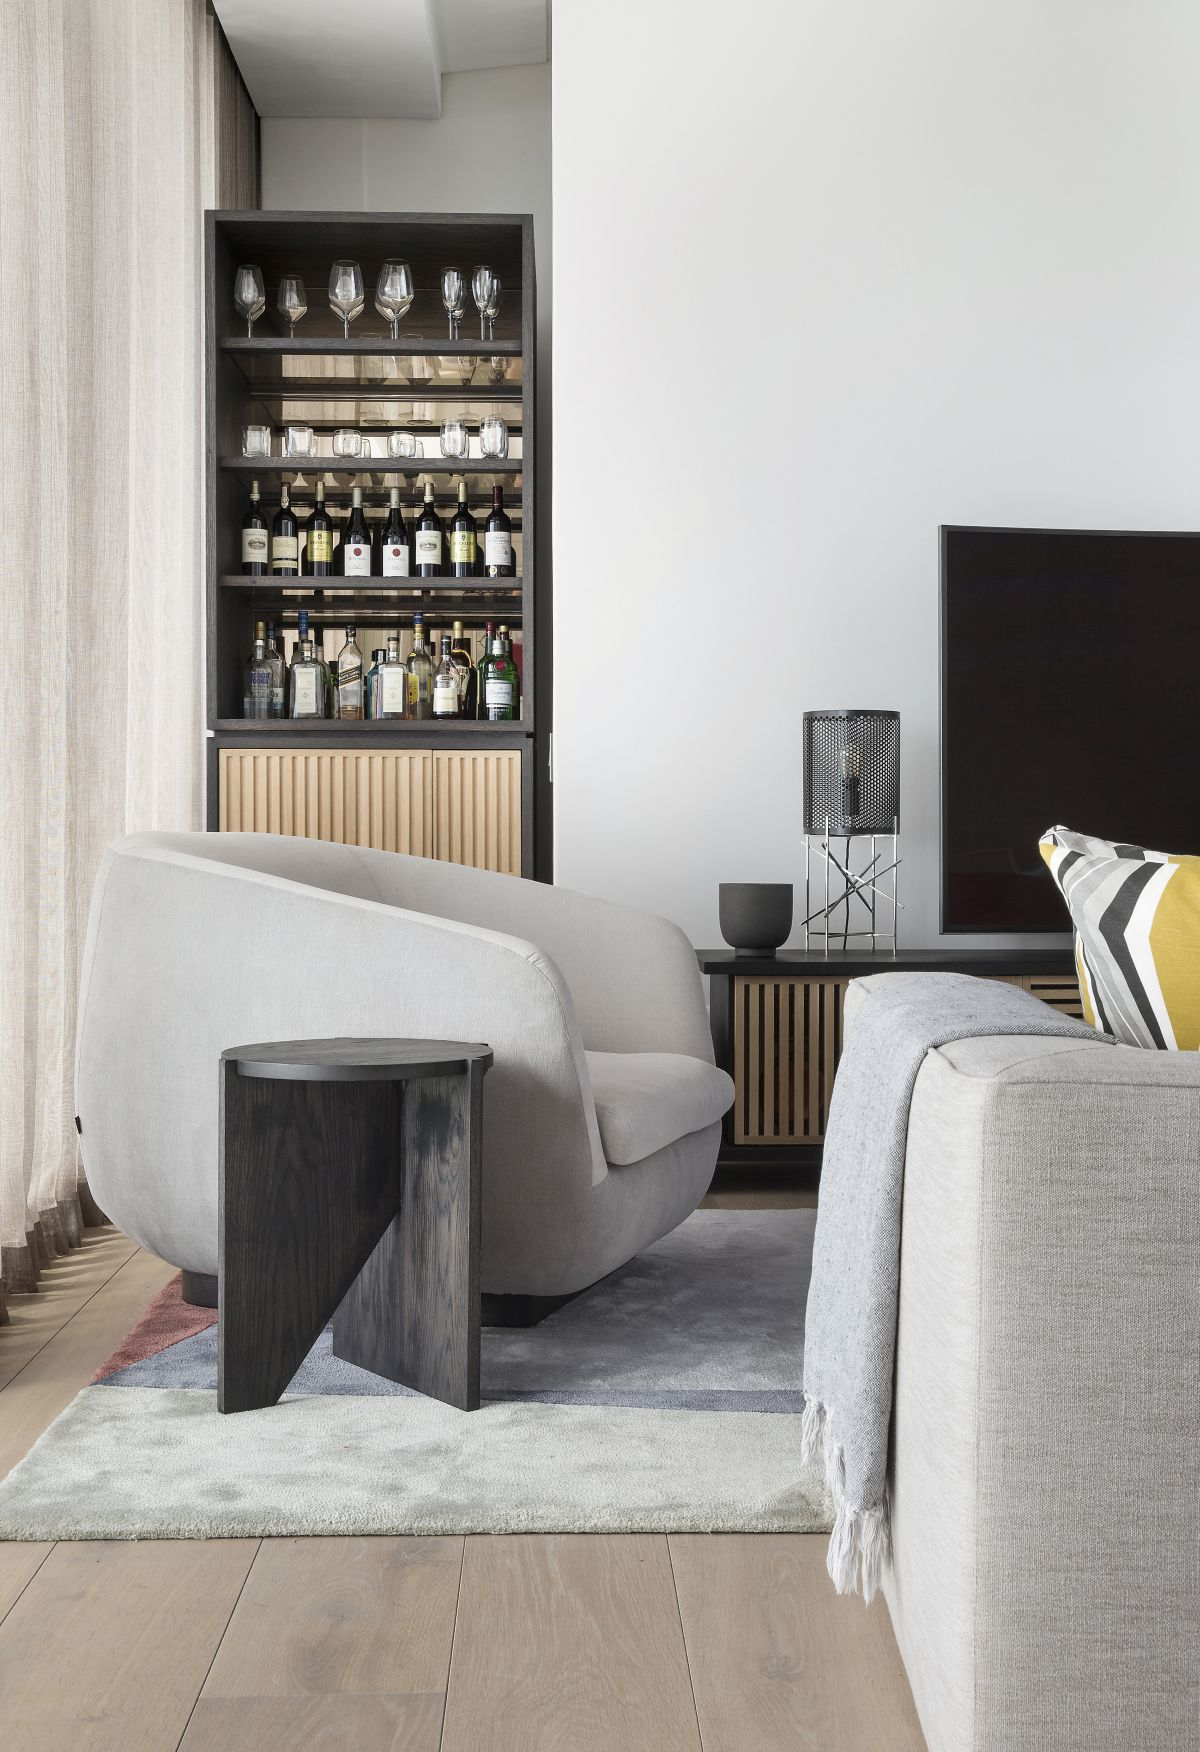 The low console and bespoke drinks cabinet were also custom-designed by OKHA